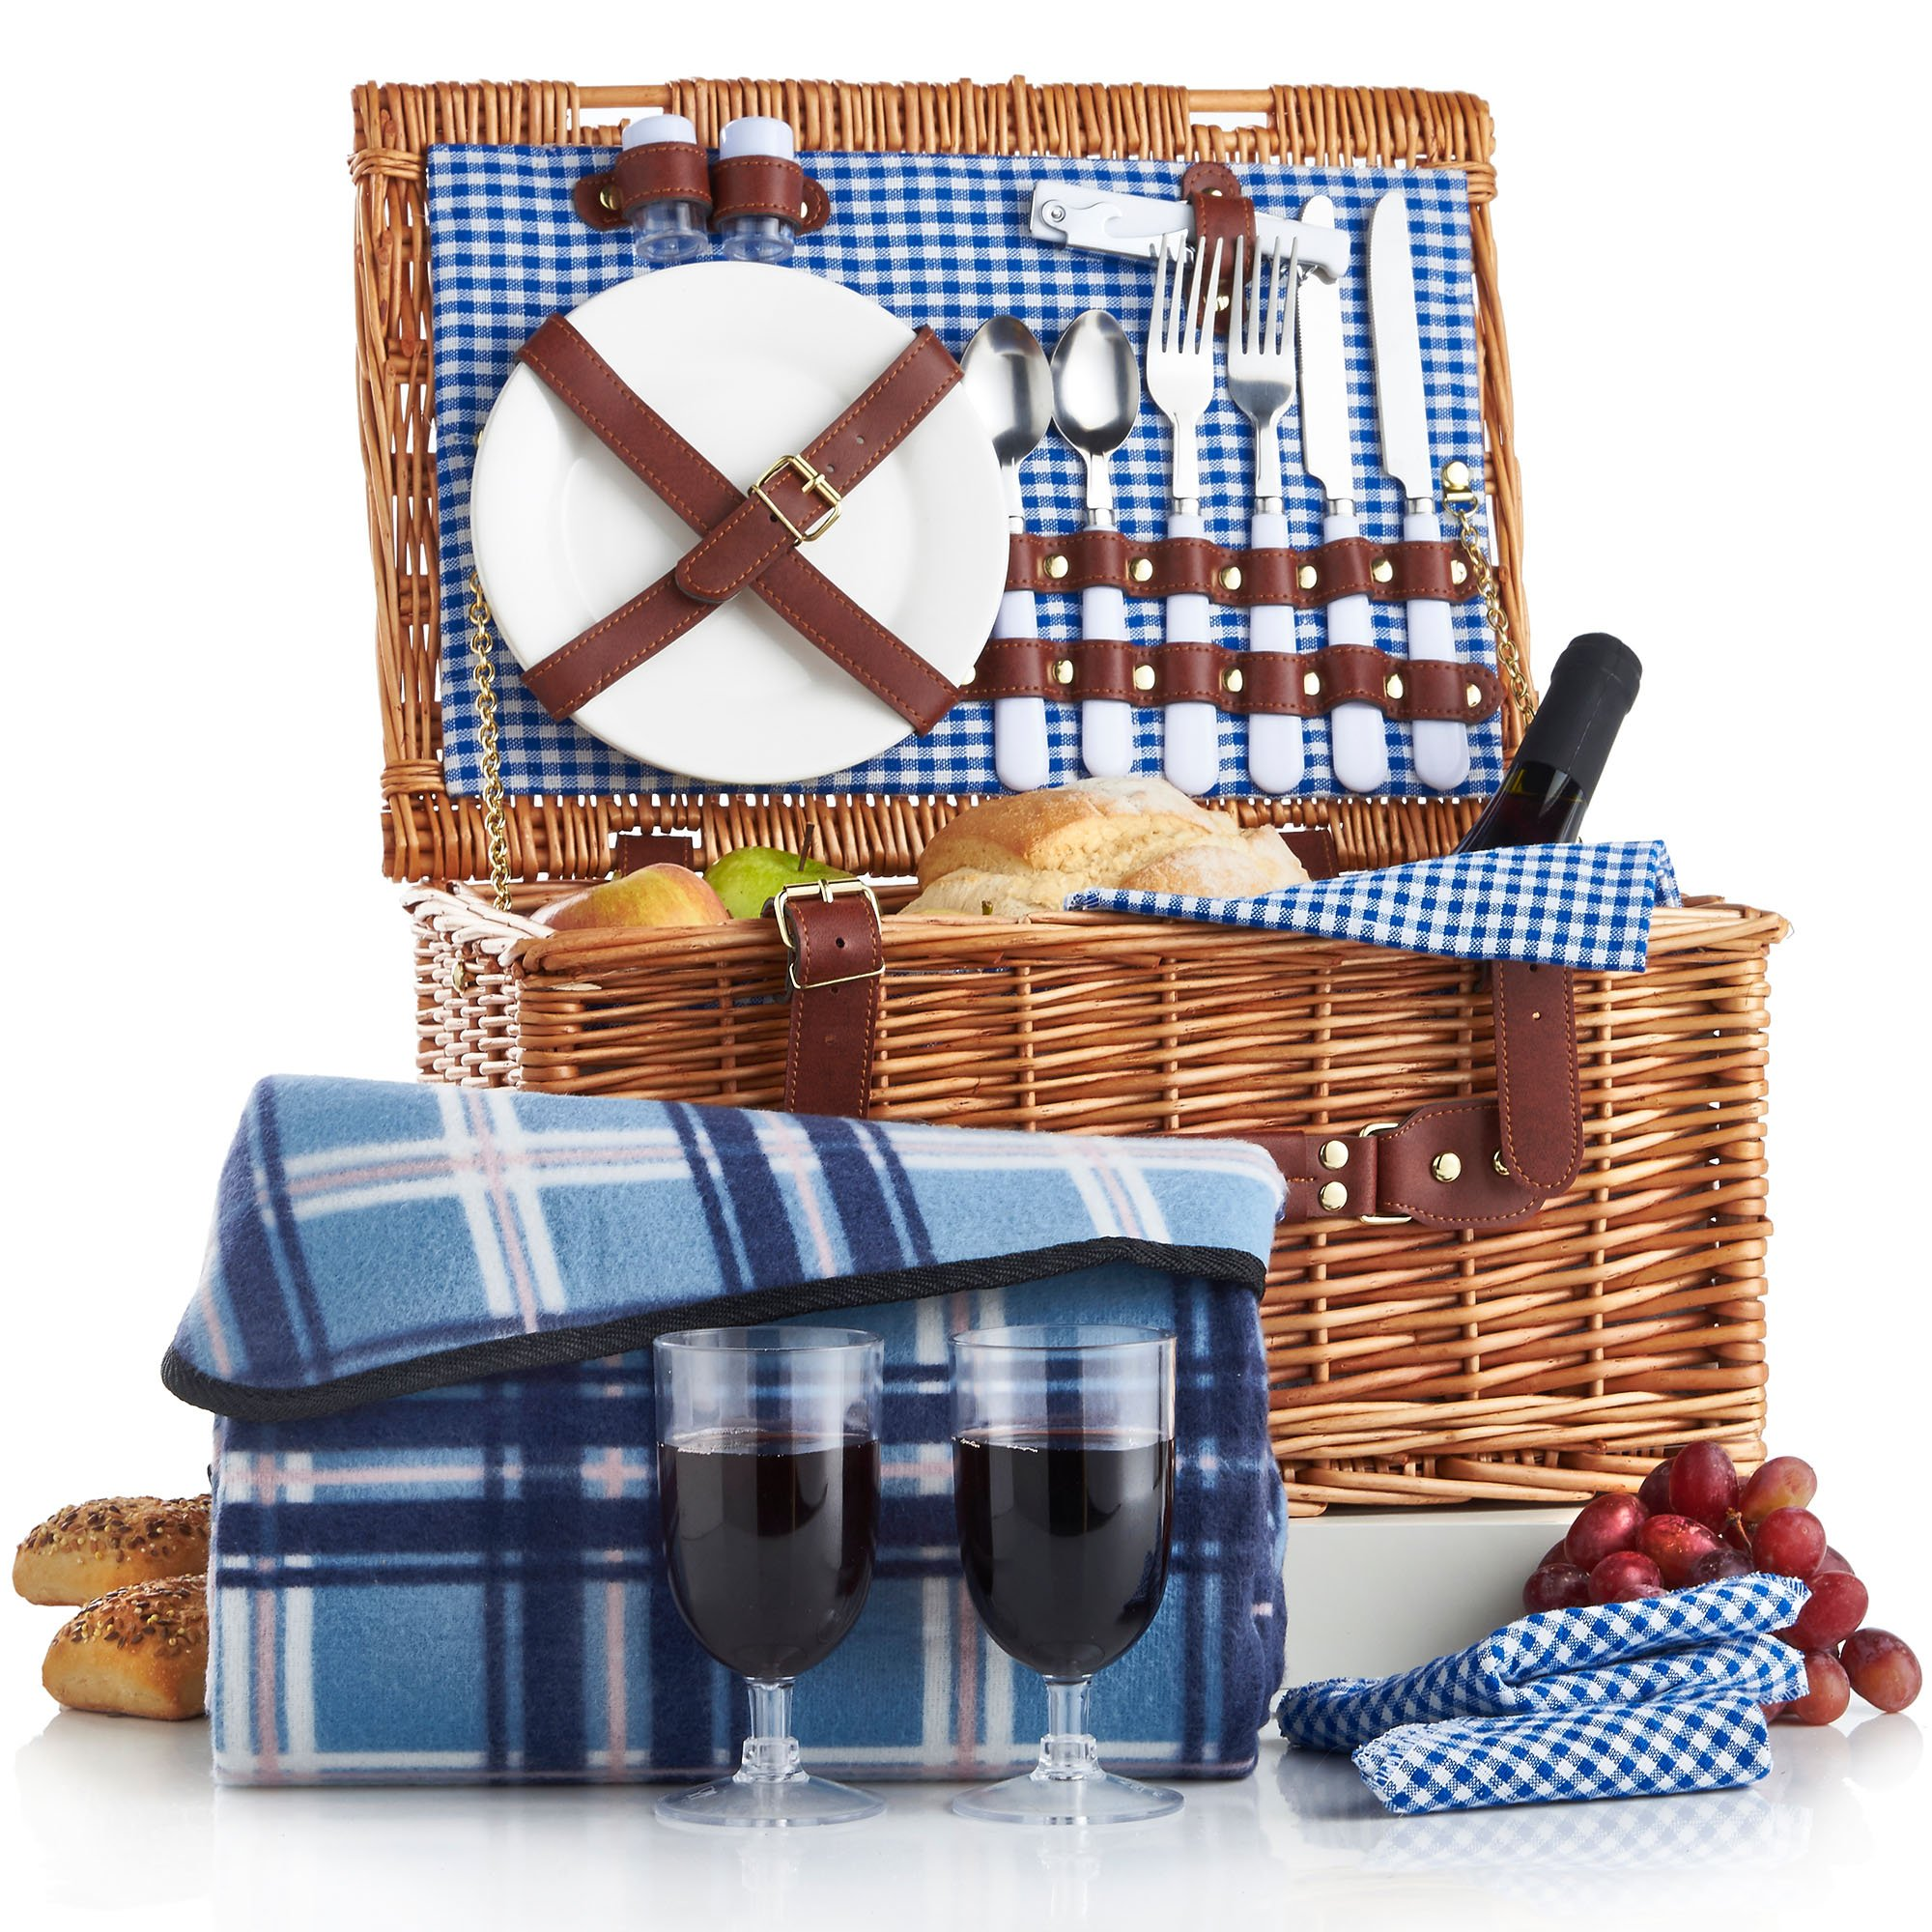 Best Picnic Basket For 2 : Vonshef deluxe person traditional wicker picnic basket